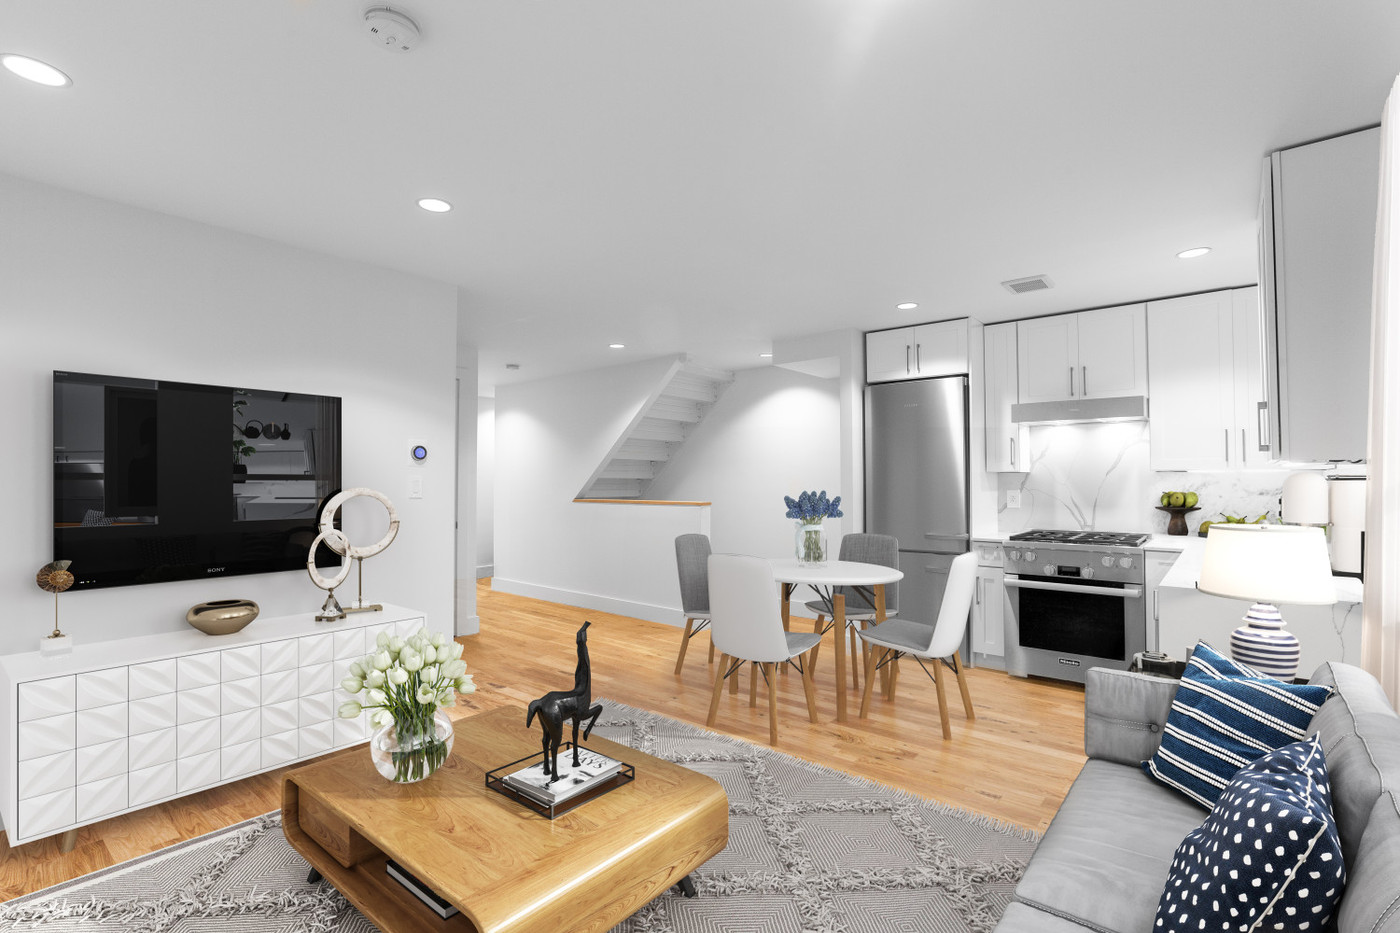 64_2nd_Kitchen_Living_Dining_Staged.jpg